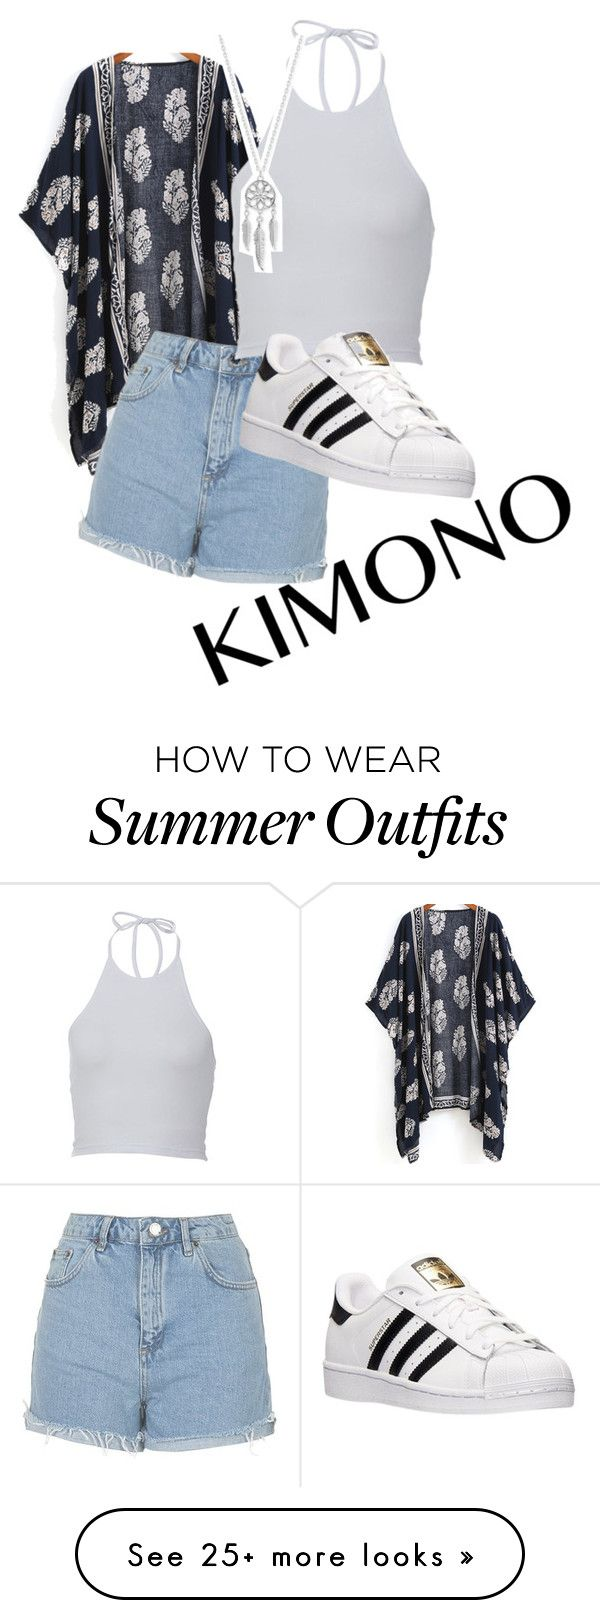 """""""Summer outfit"""" by emely11 on Polyvore featuring Topshop, adidas, Lucky Brand and kimonos"""